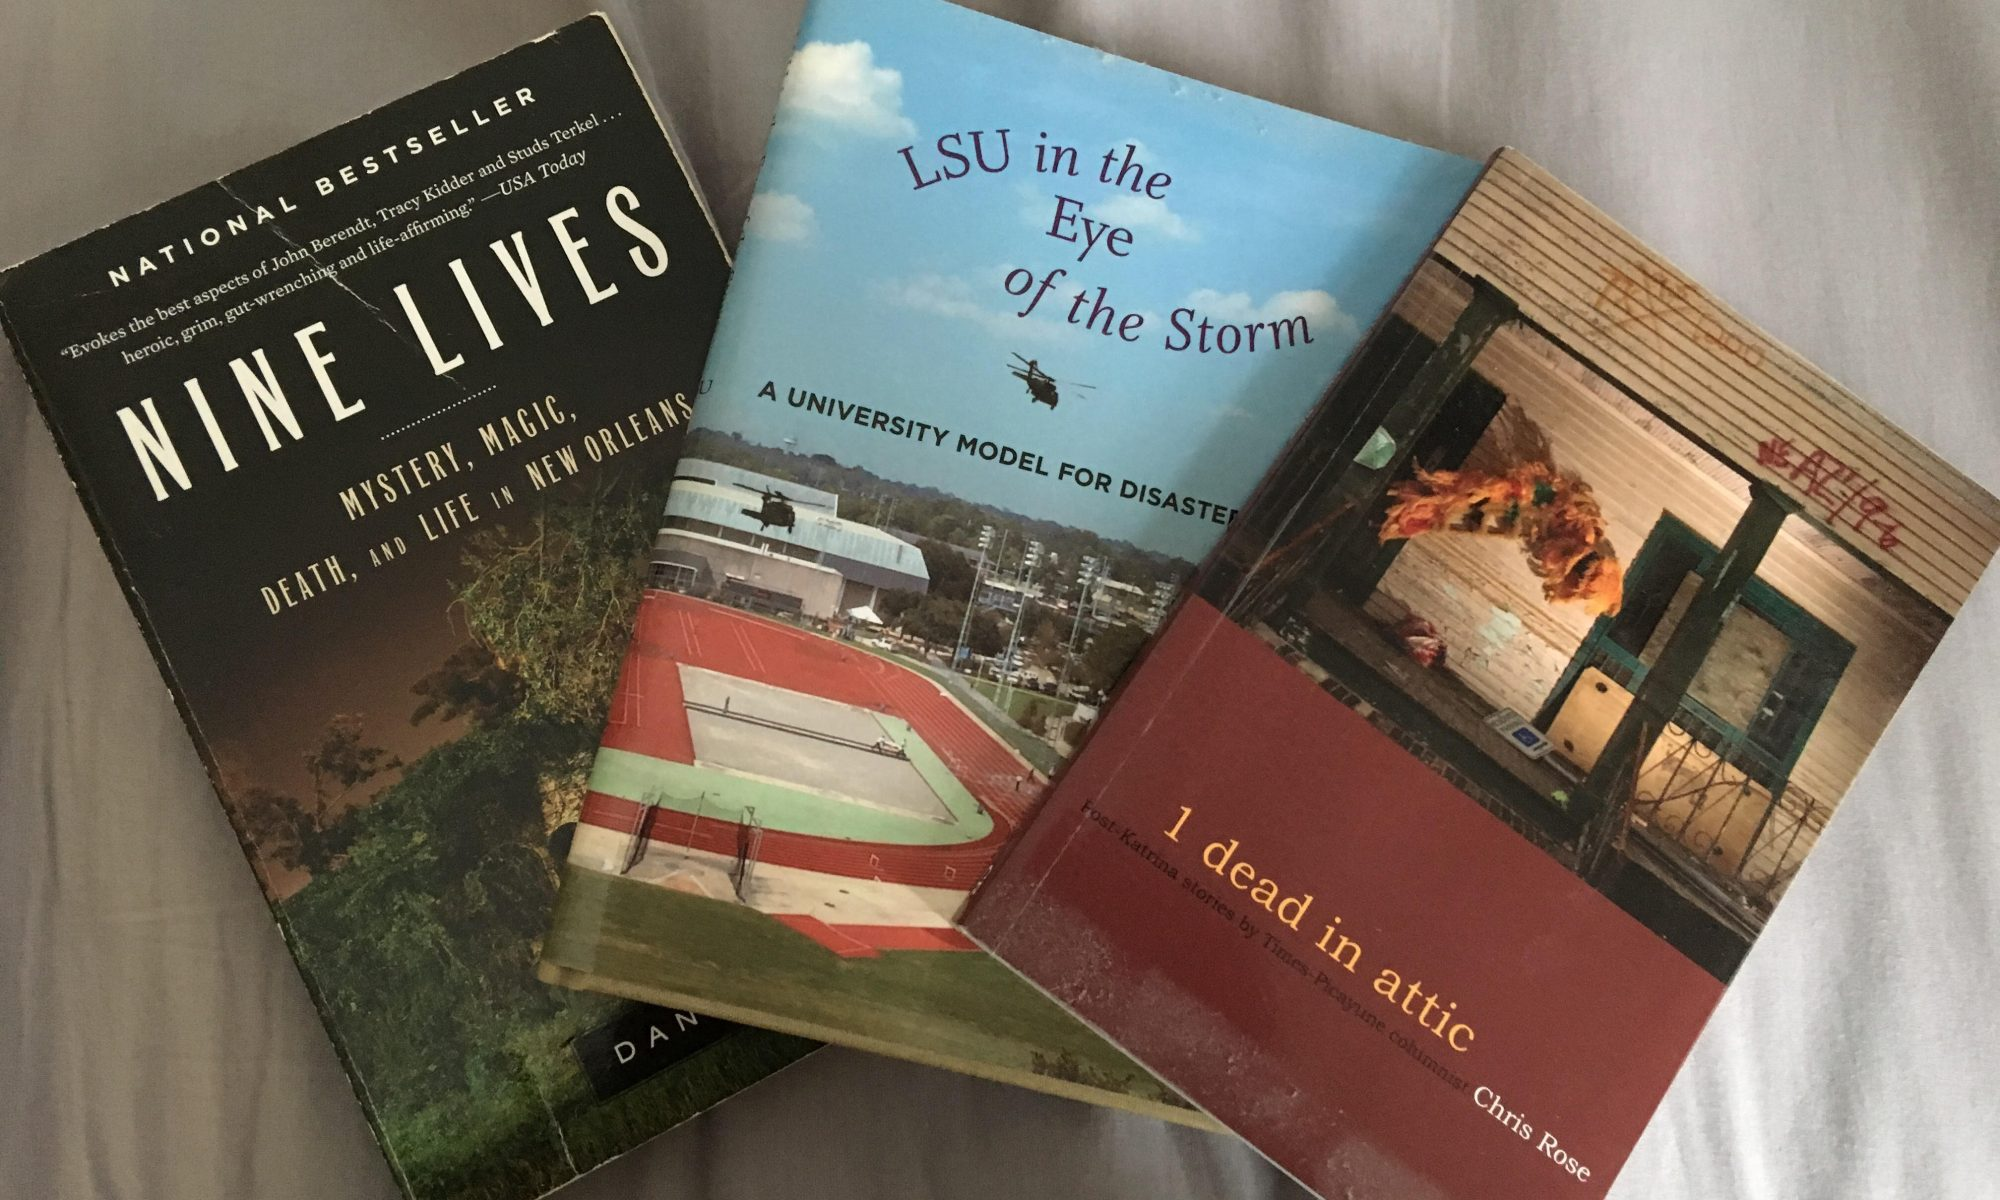 Recommended reading about Katrina.